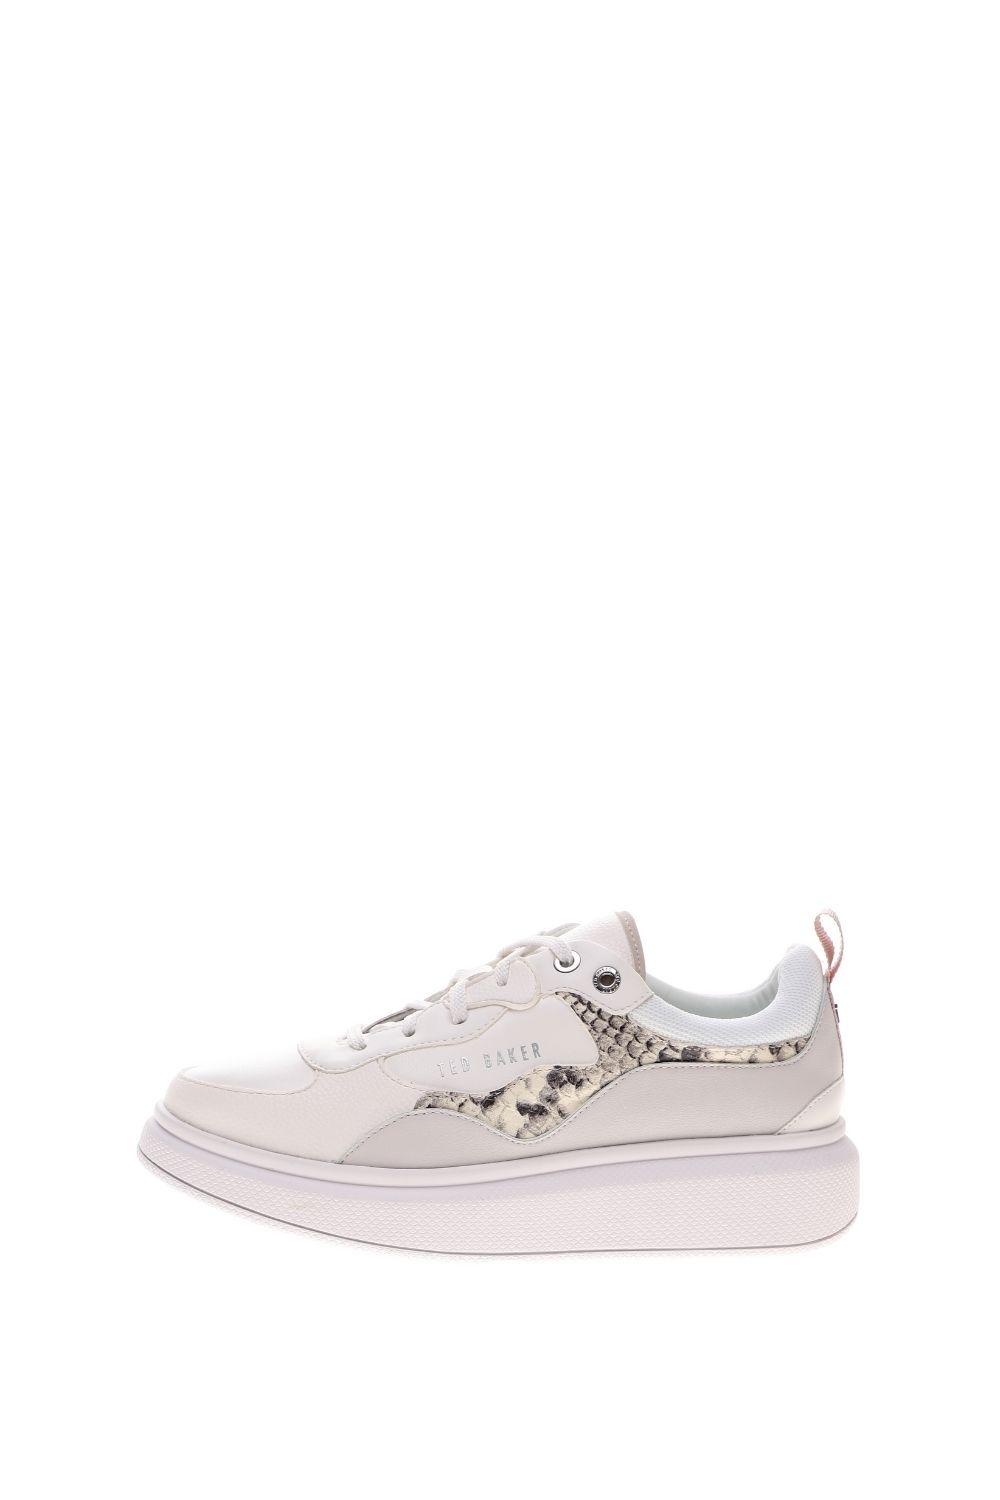 TED BAKER – Γυναικεία sneakers TED BAKER ARELLIS EXOTIC TRIM TRAINER λευκά